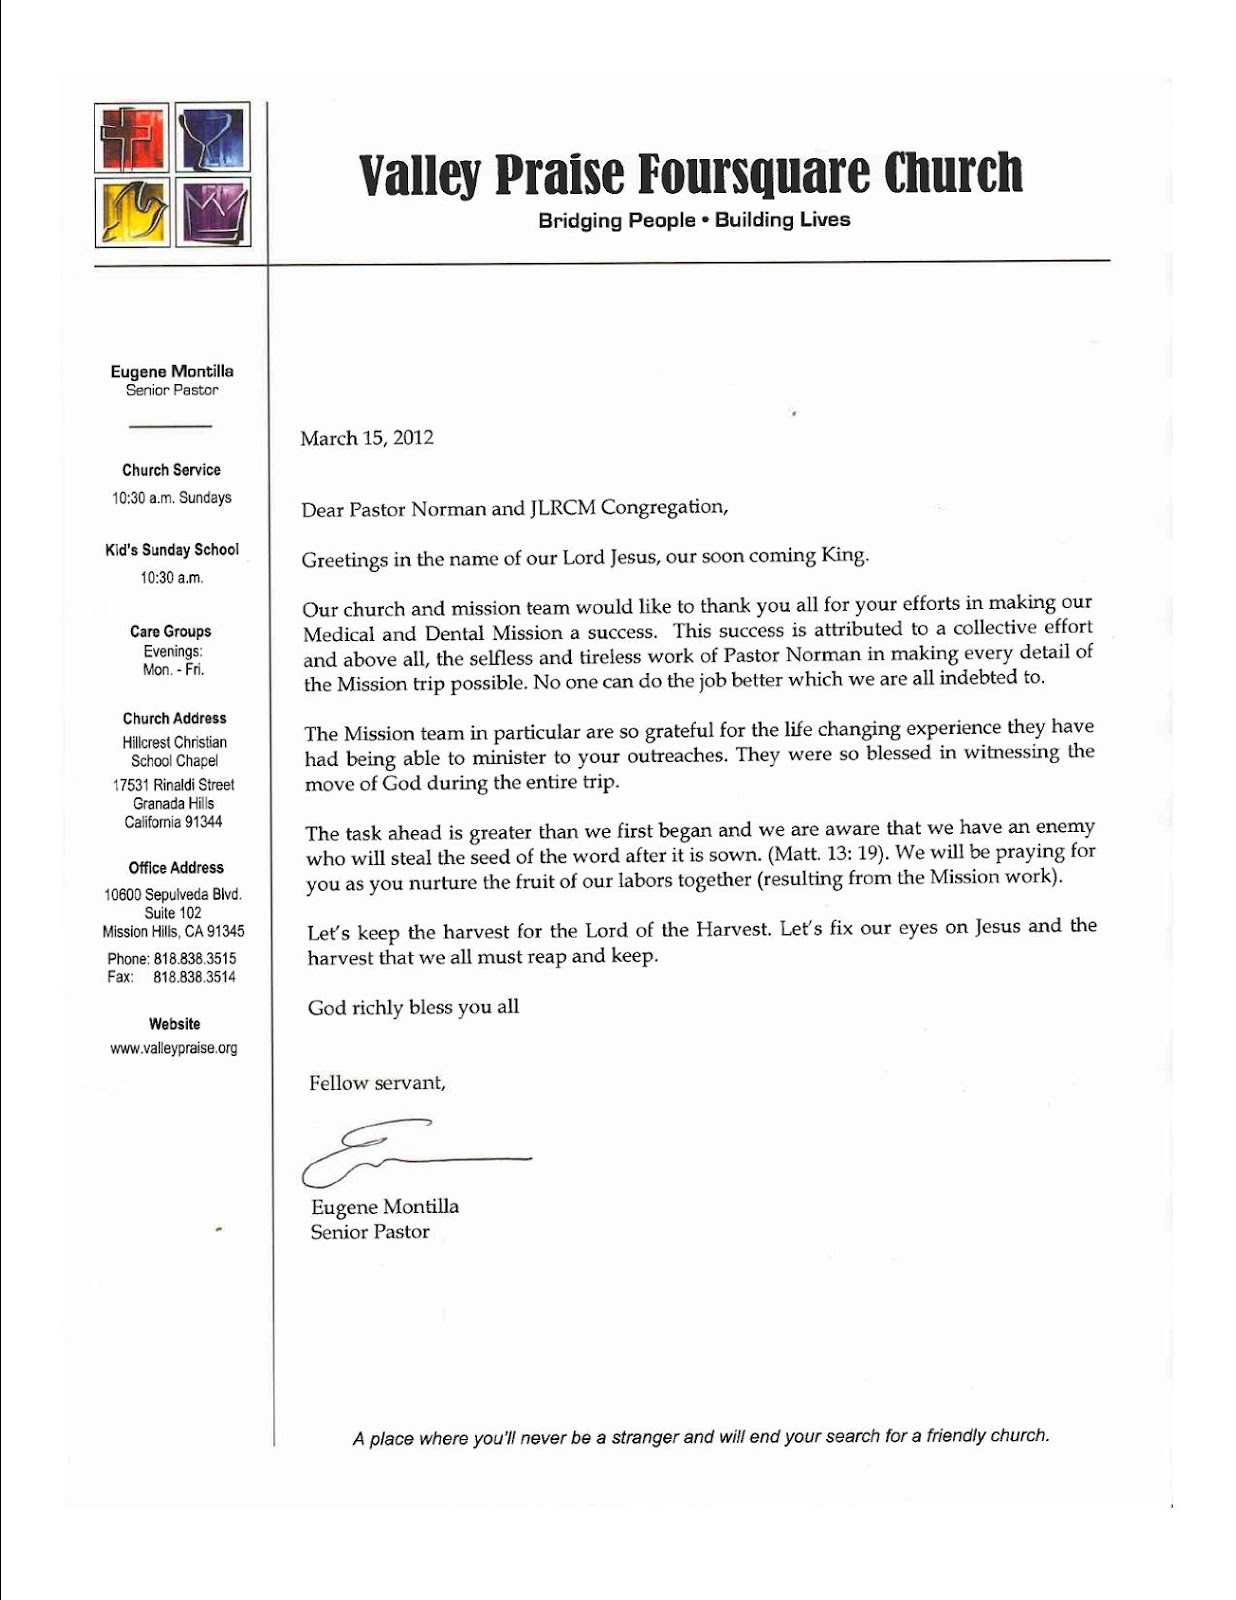 the living rock church of iloilo city thank you note from pastor thank you note from pastor eugene and valley praise medical dental team